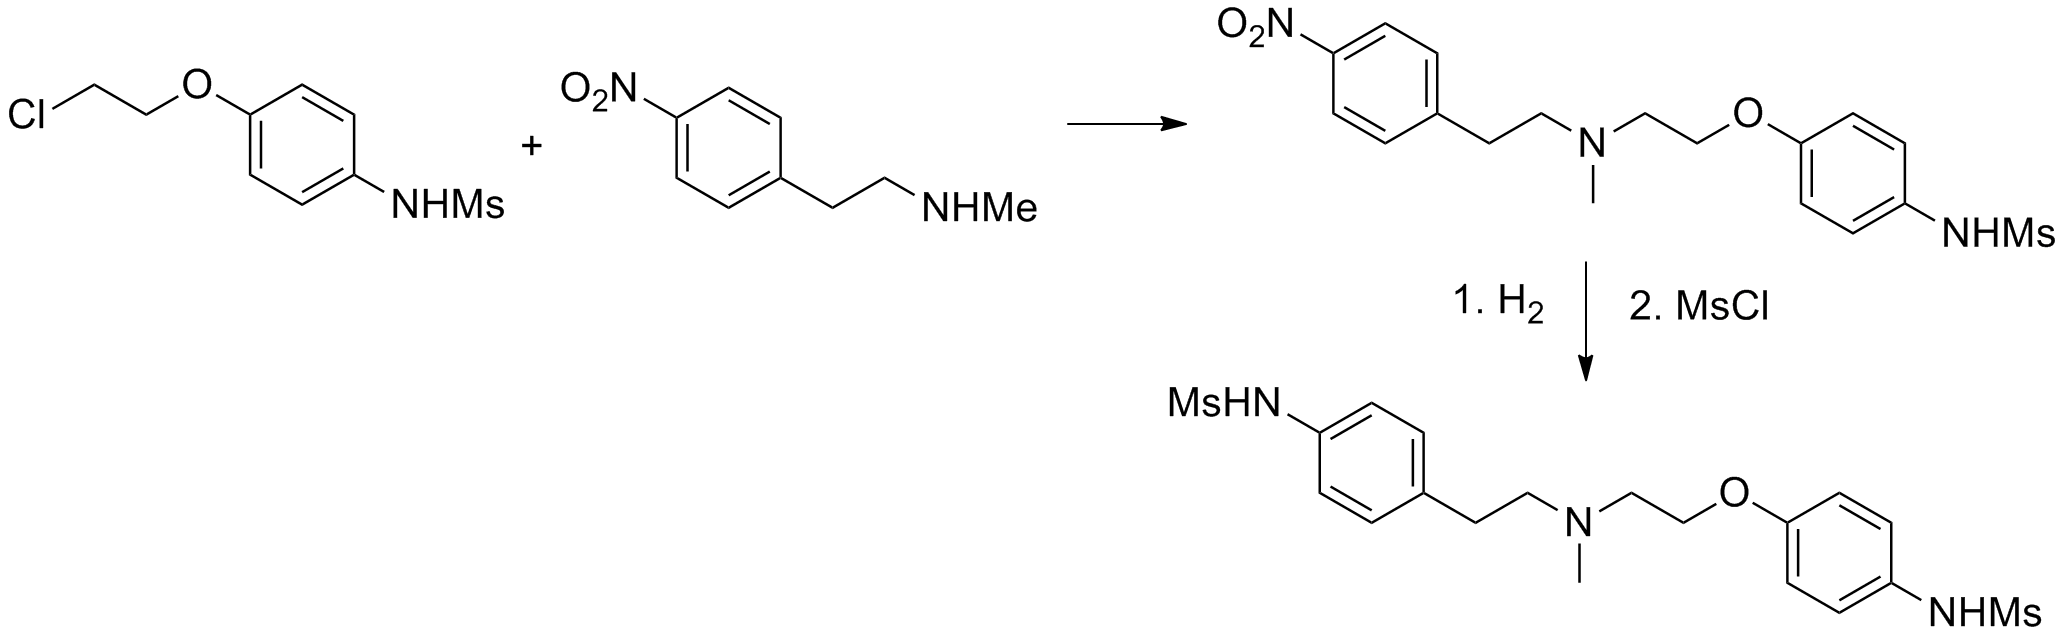 File:Dofetilide synthesis.png - Wikimedia Commons